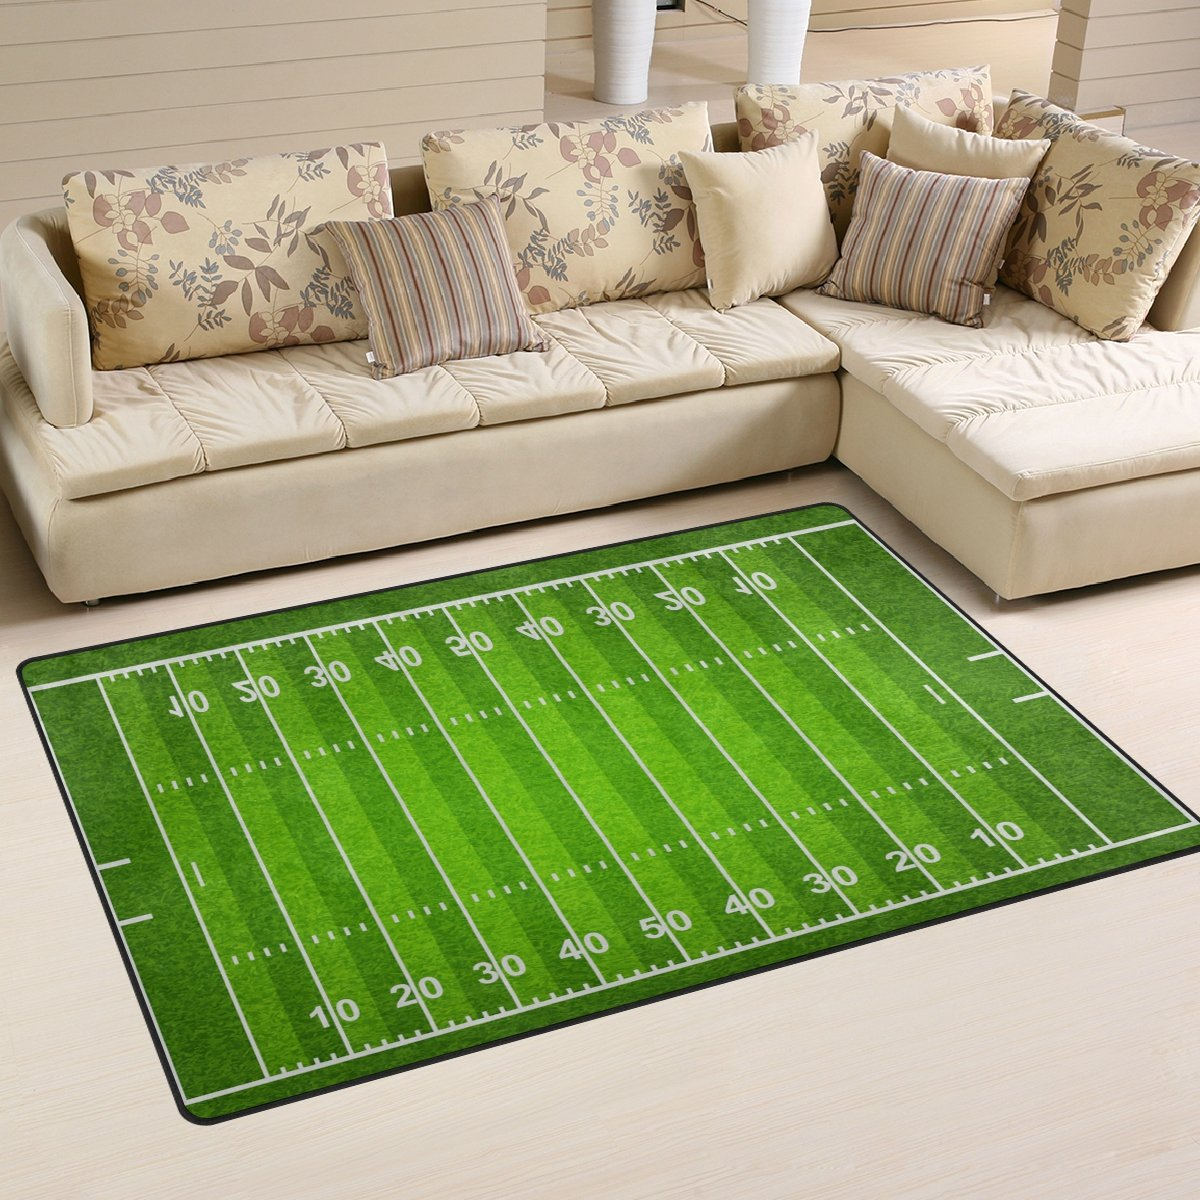 WellLee Sports Area Rug,Standard American Football Field Floor Rug Non-slip Doormat for Living Dining Dorm Room Bedroom Decor 31x20 Inch by WellLee